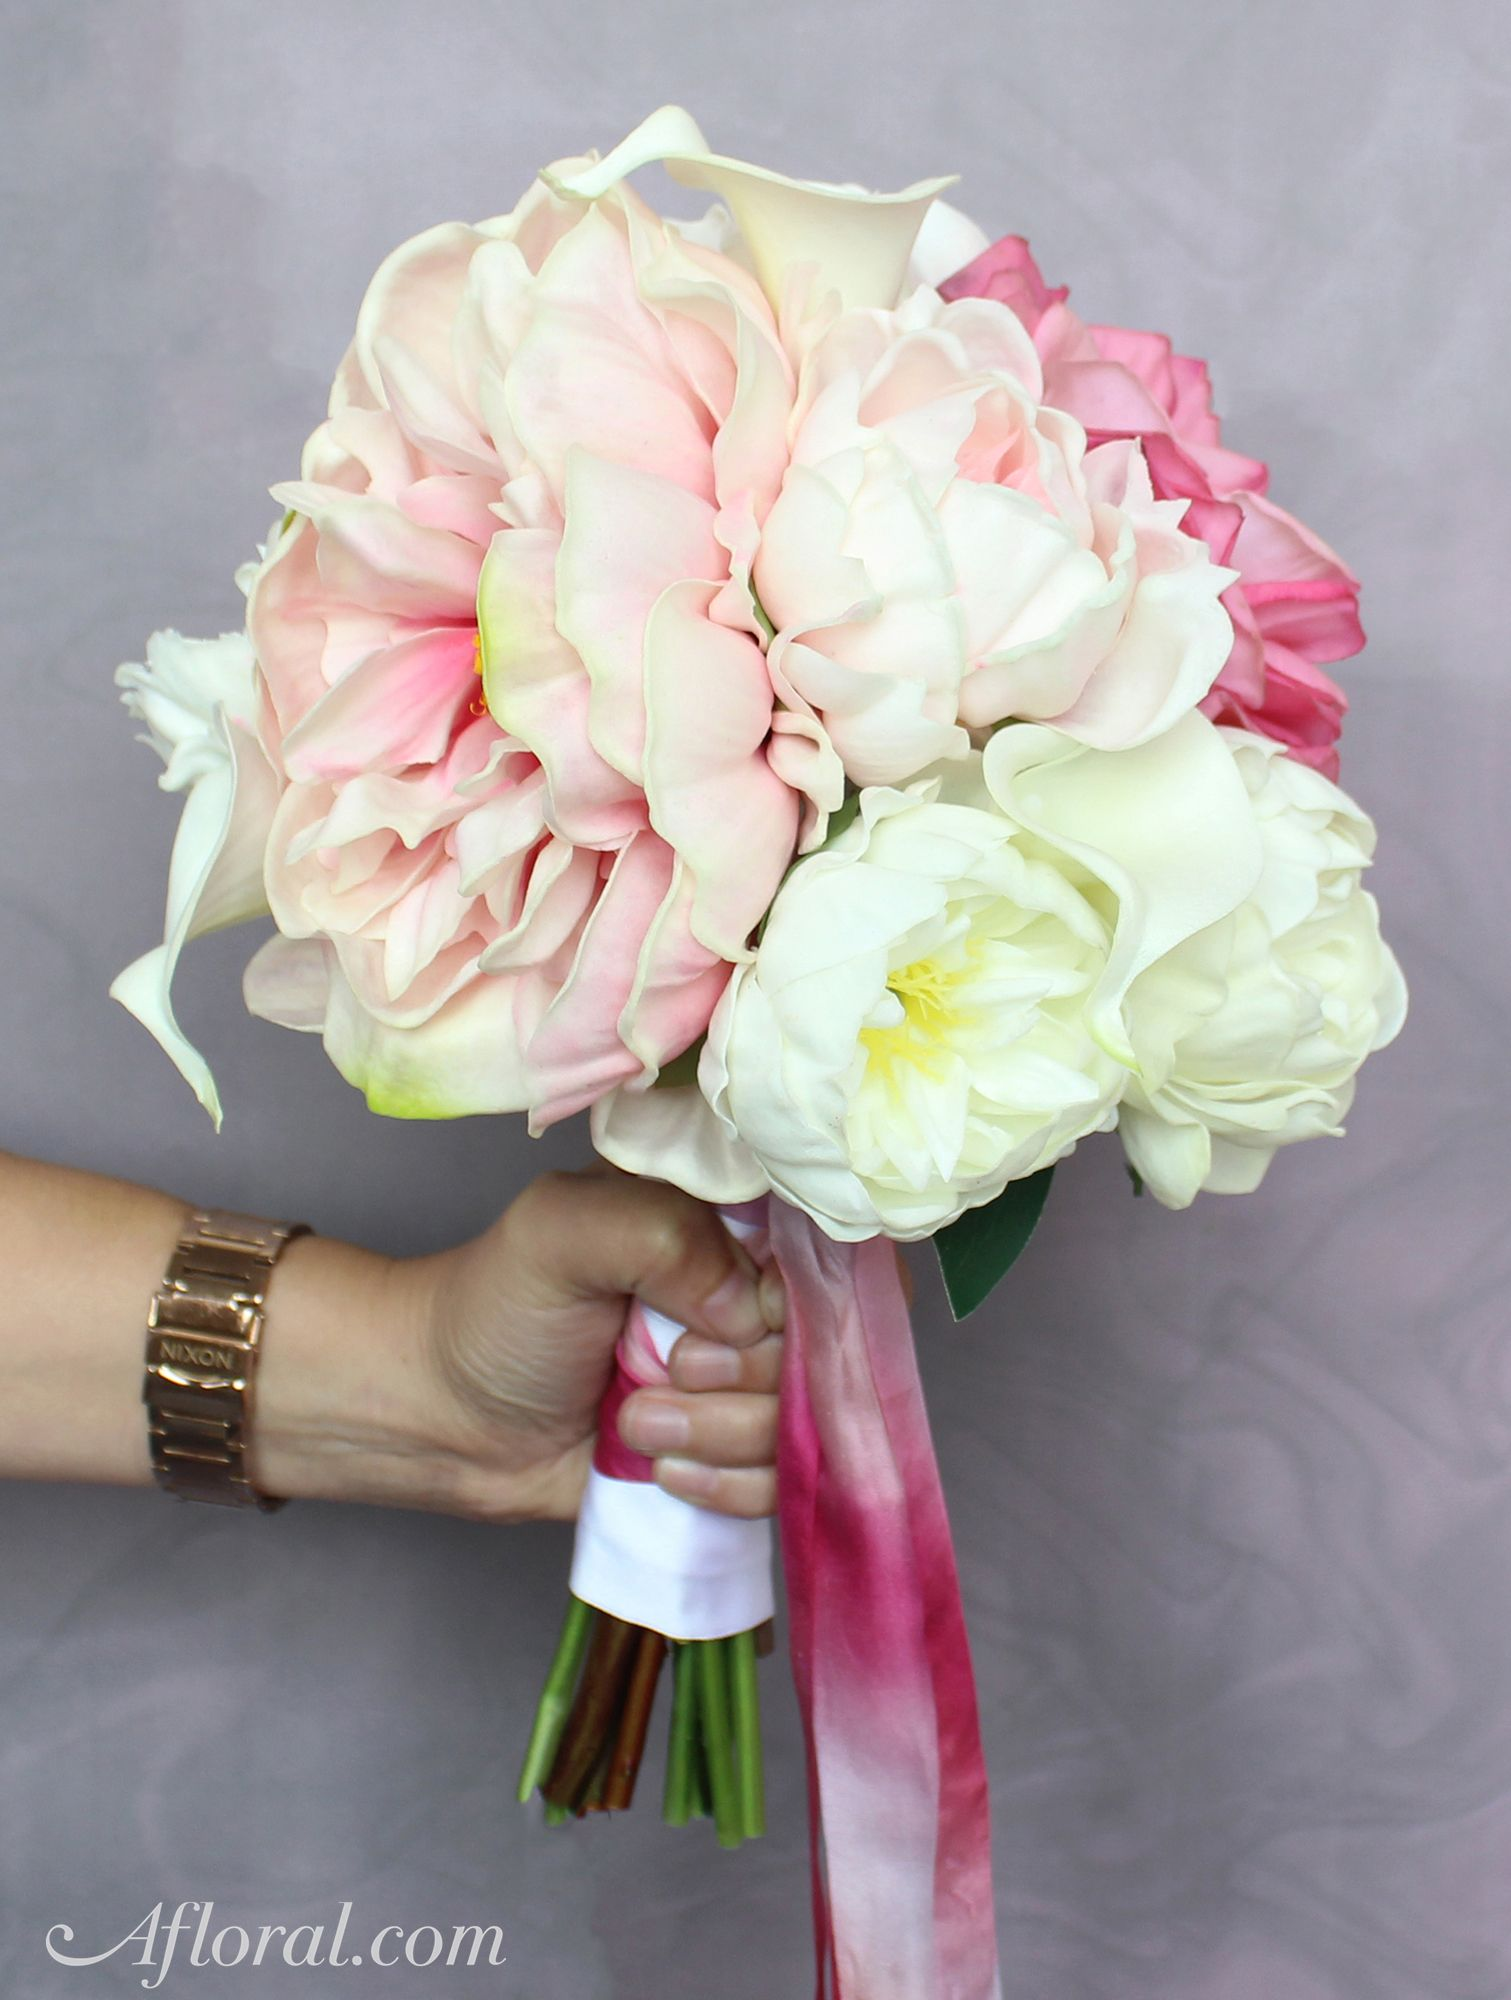 Fill your bridal bouquet with real touch flowers from afloral fill your bridal bouquet with real touch flowers from afloral and create a lasting izmirmasajfo